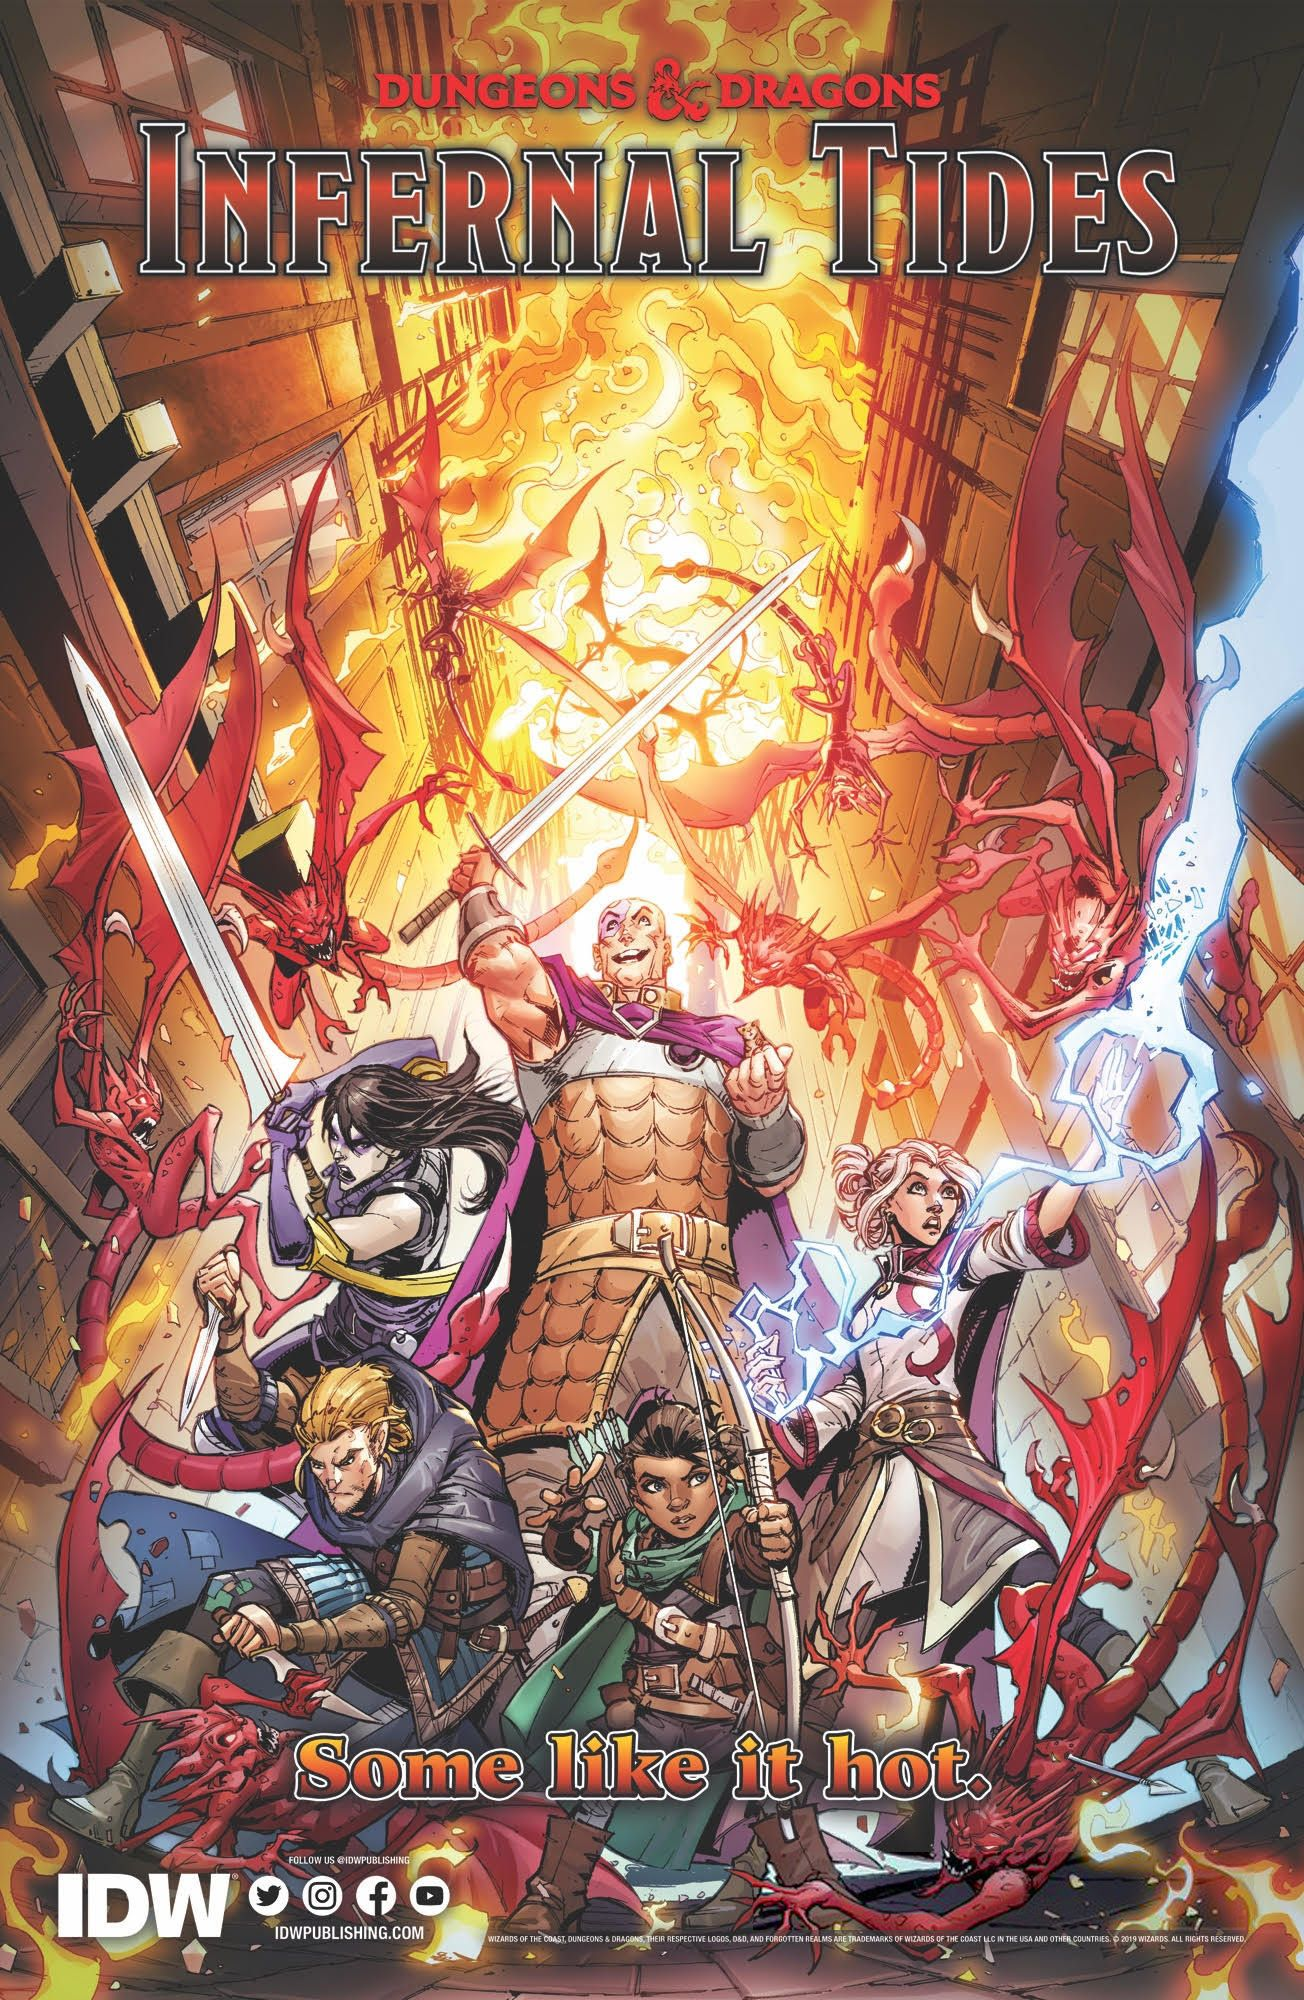 DUNGEONS & DRAGONS INFERNAL TIDES #1 (OF 5) CVR A DUNBAR